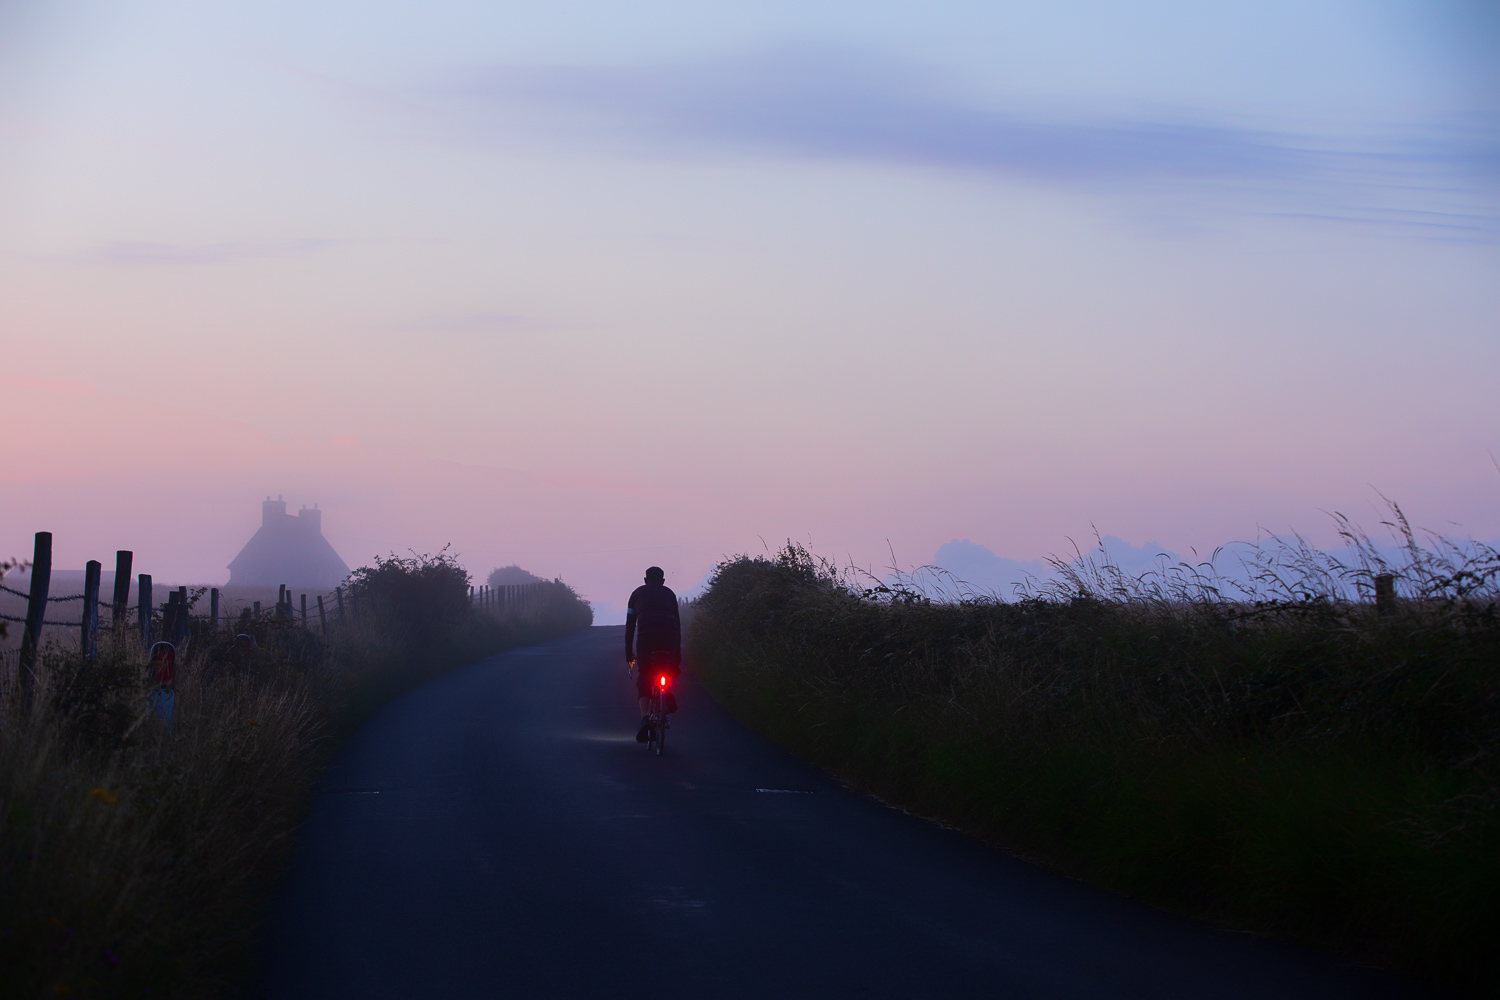 Cyclist pedals up hill on country lane just before dawn